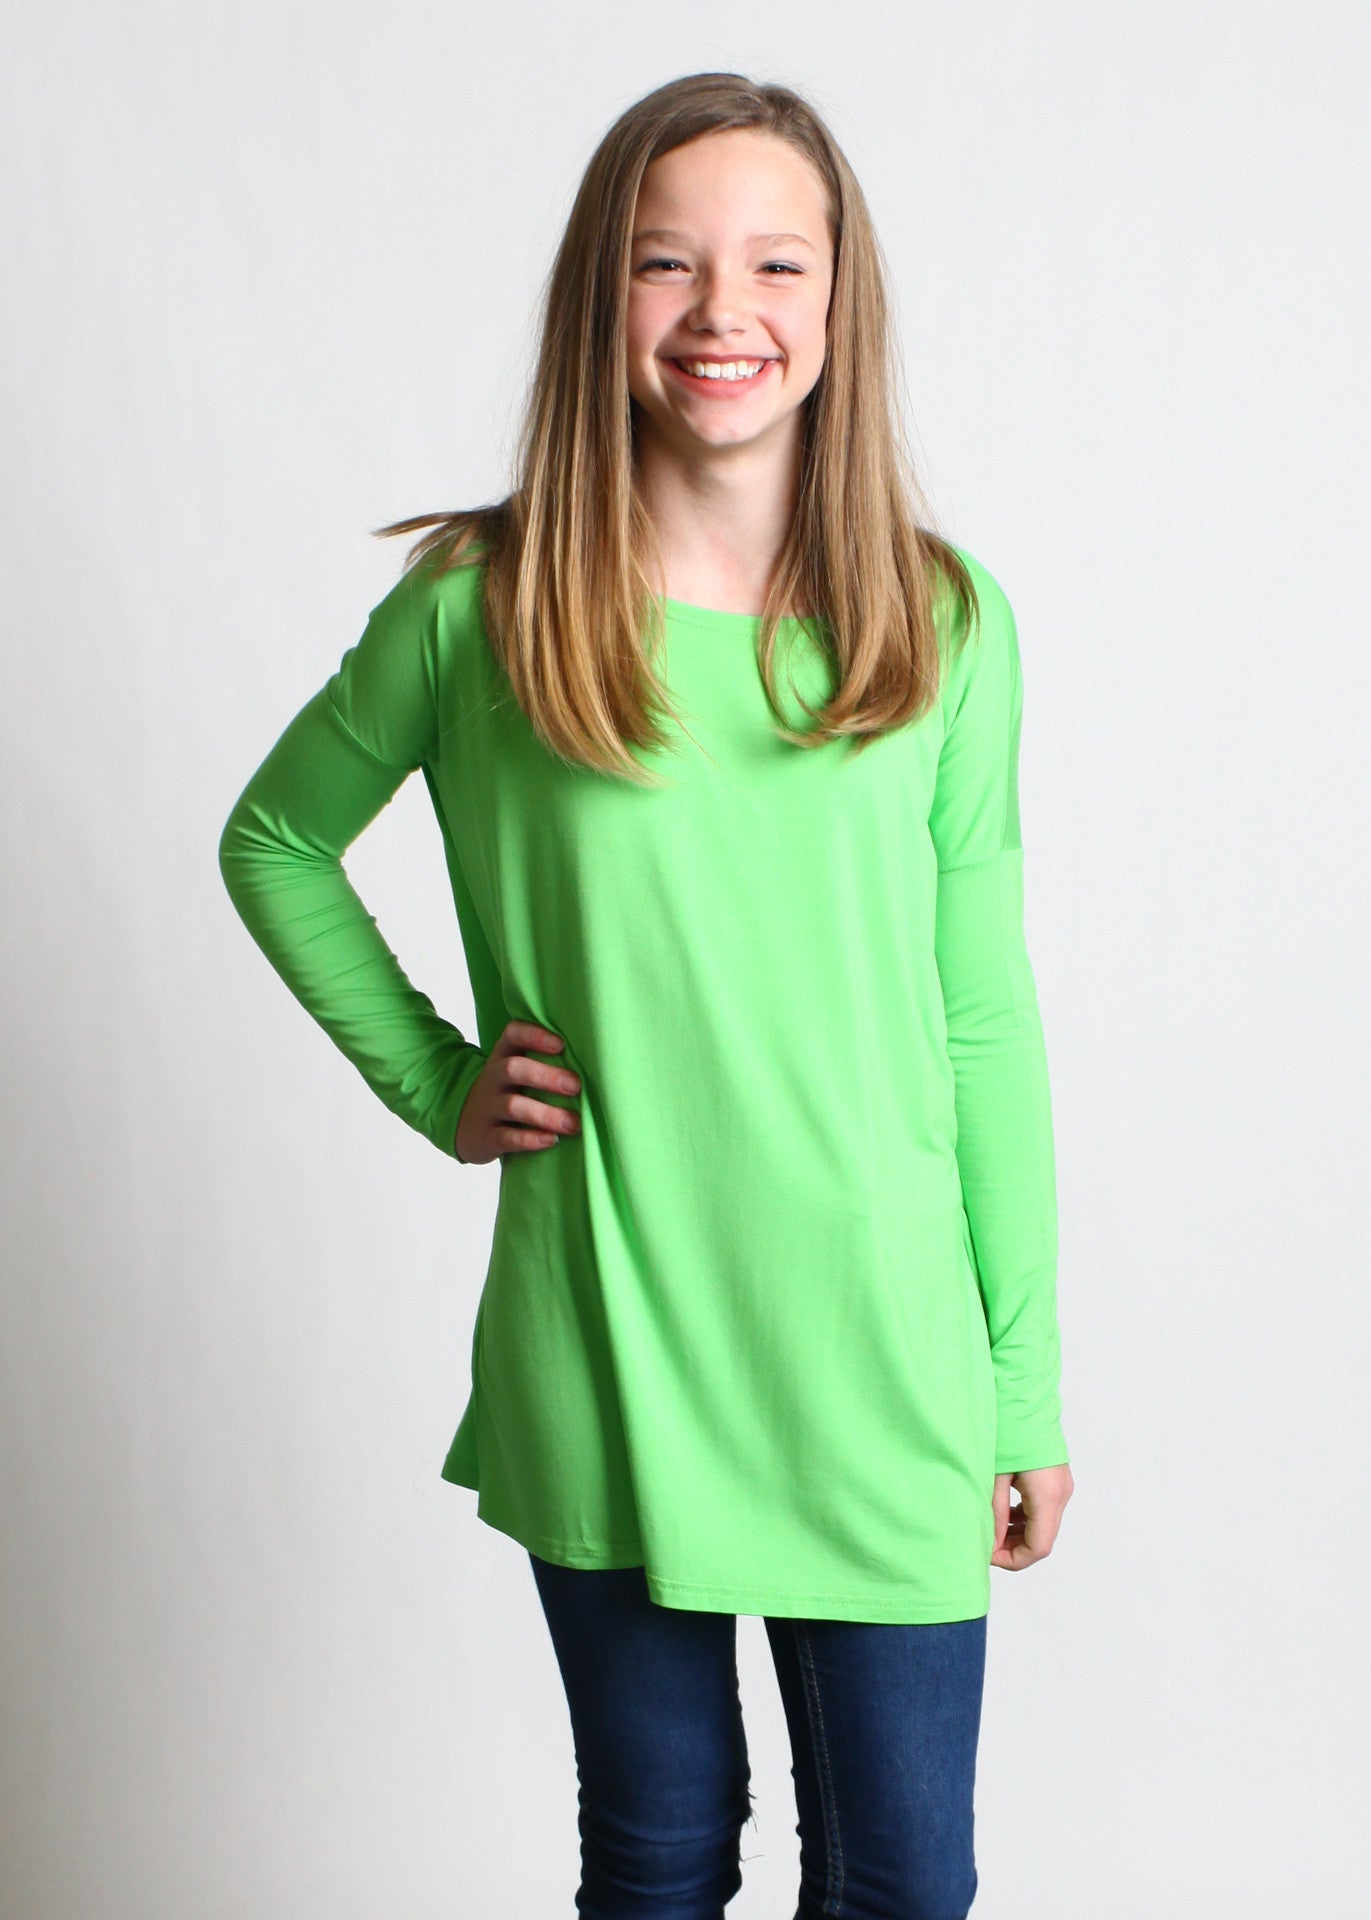 Original Kids Long Sleeve Top - Piko Clearance Center - 10